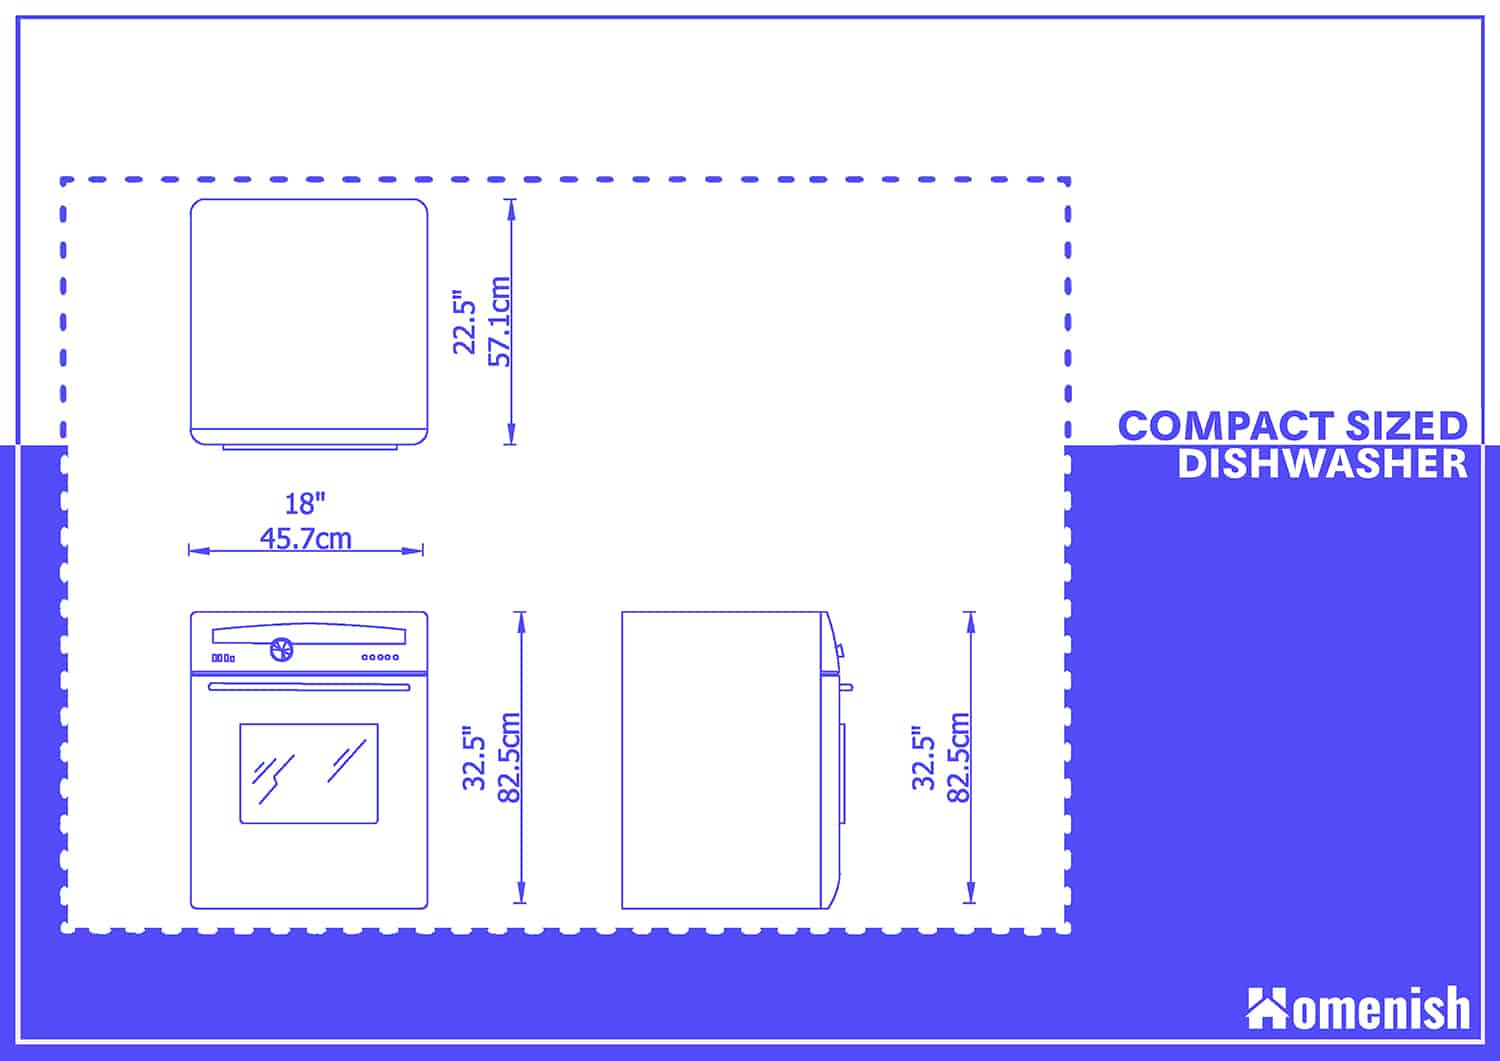 Compact Sized Dishwasher Dimensions